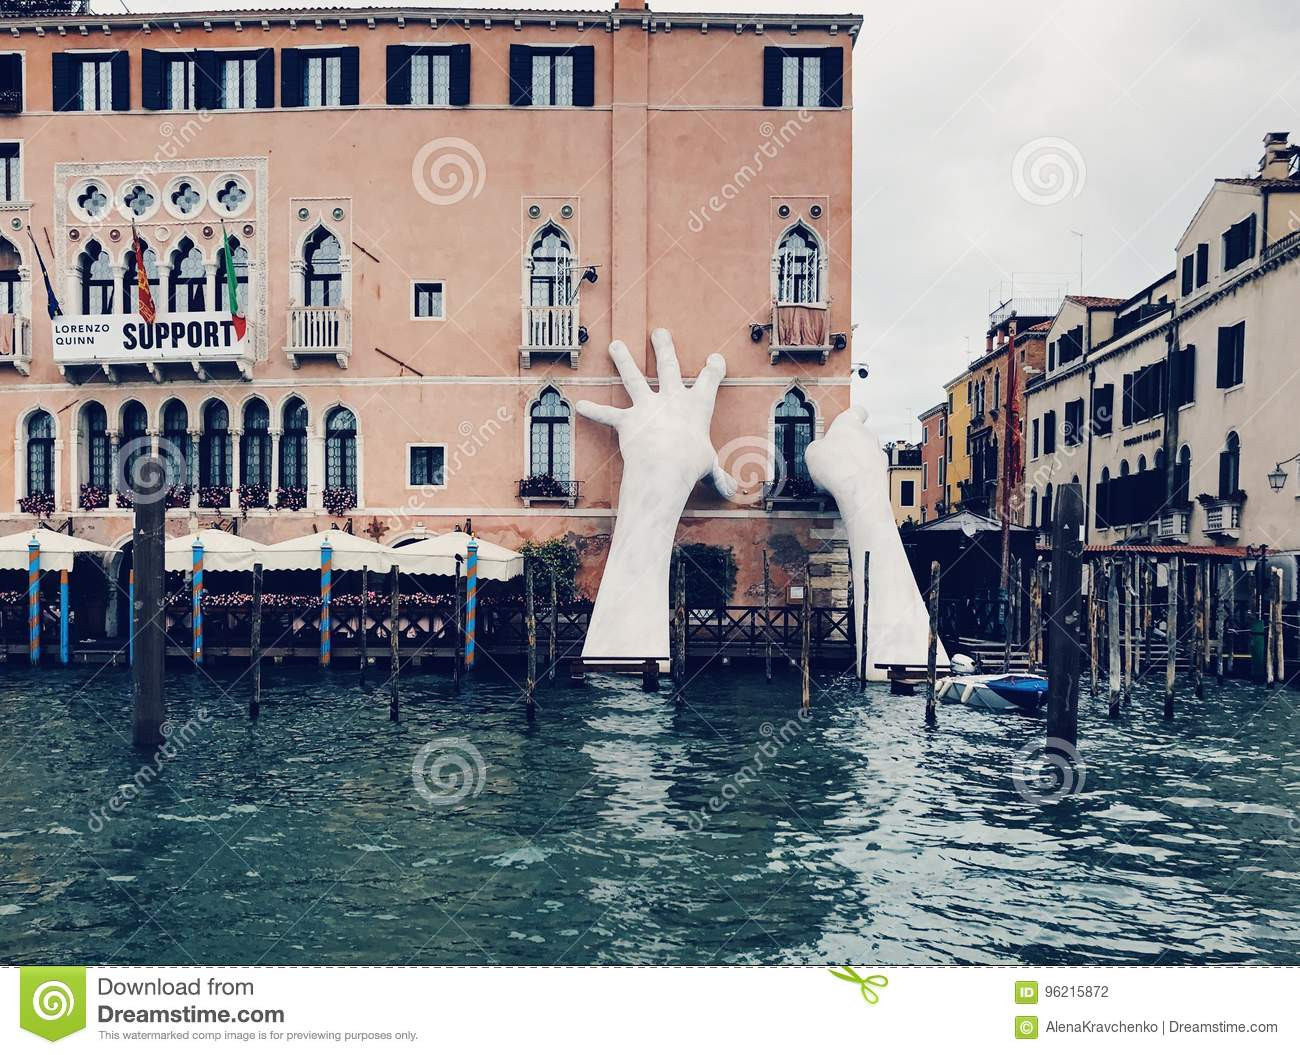 Gigantic hands rising from water to support the Ca' Sagredo Hotel, Venice